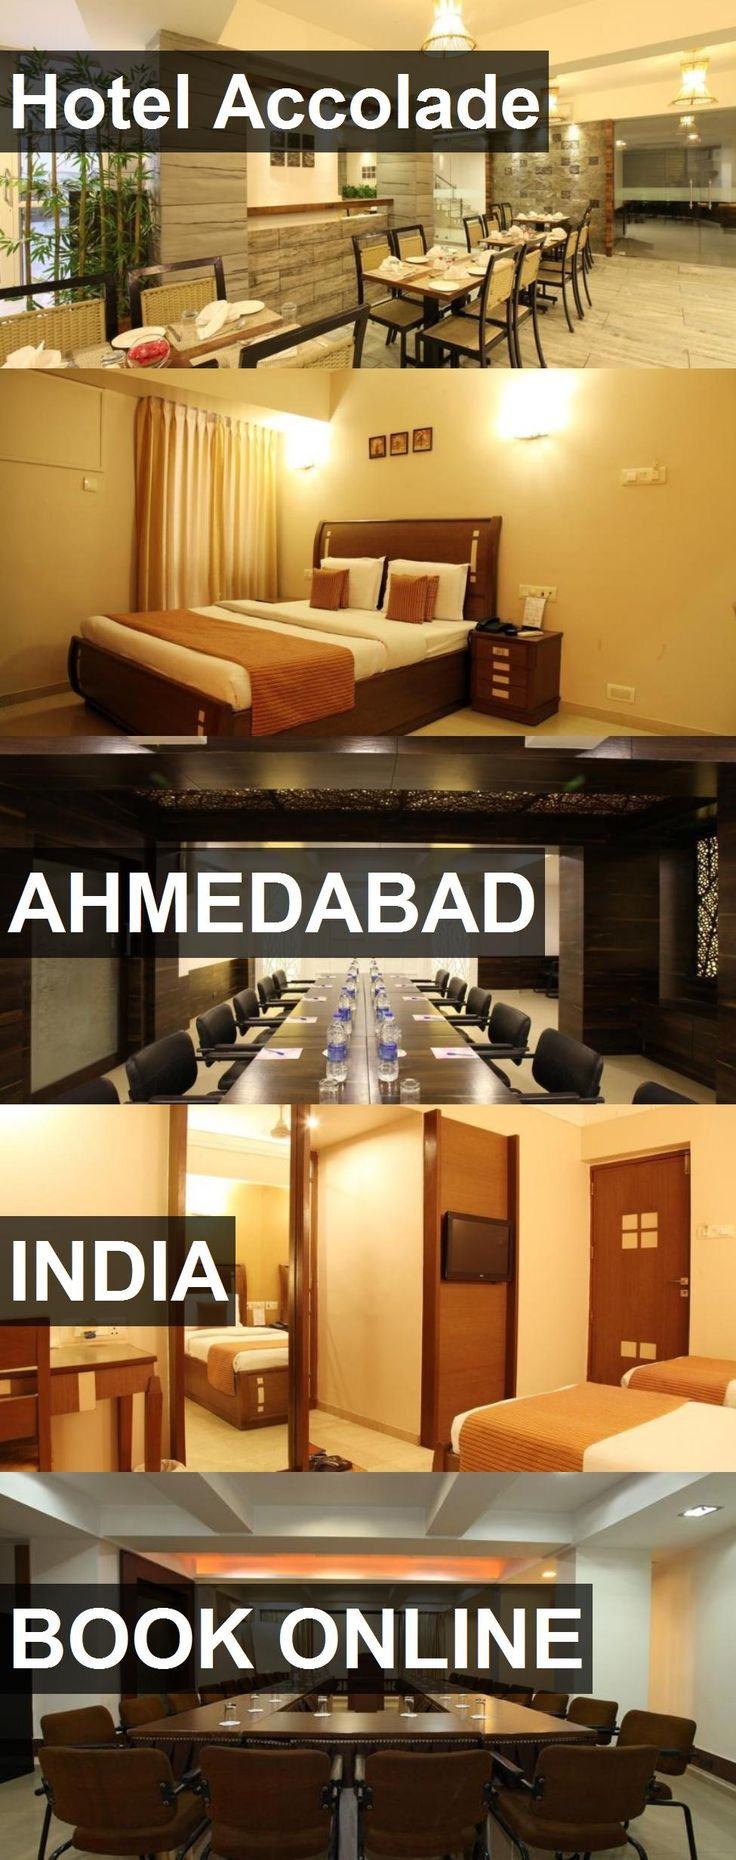 Hotel Hotel Accolade in Ahmedabad, India. For more information, photos, reviews and best prices please follow the link. #India #Ahmedabad #HotelAccolade #hotel #travel #vacation